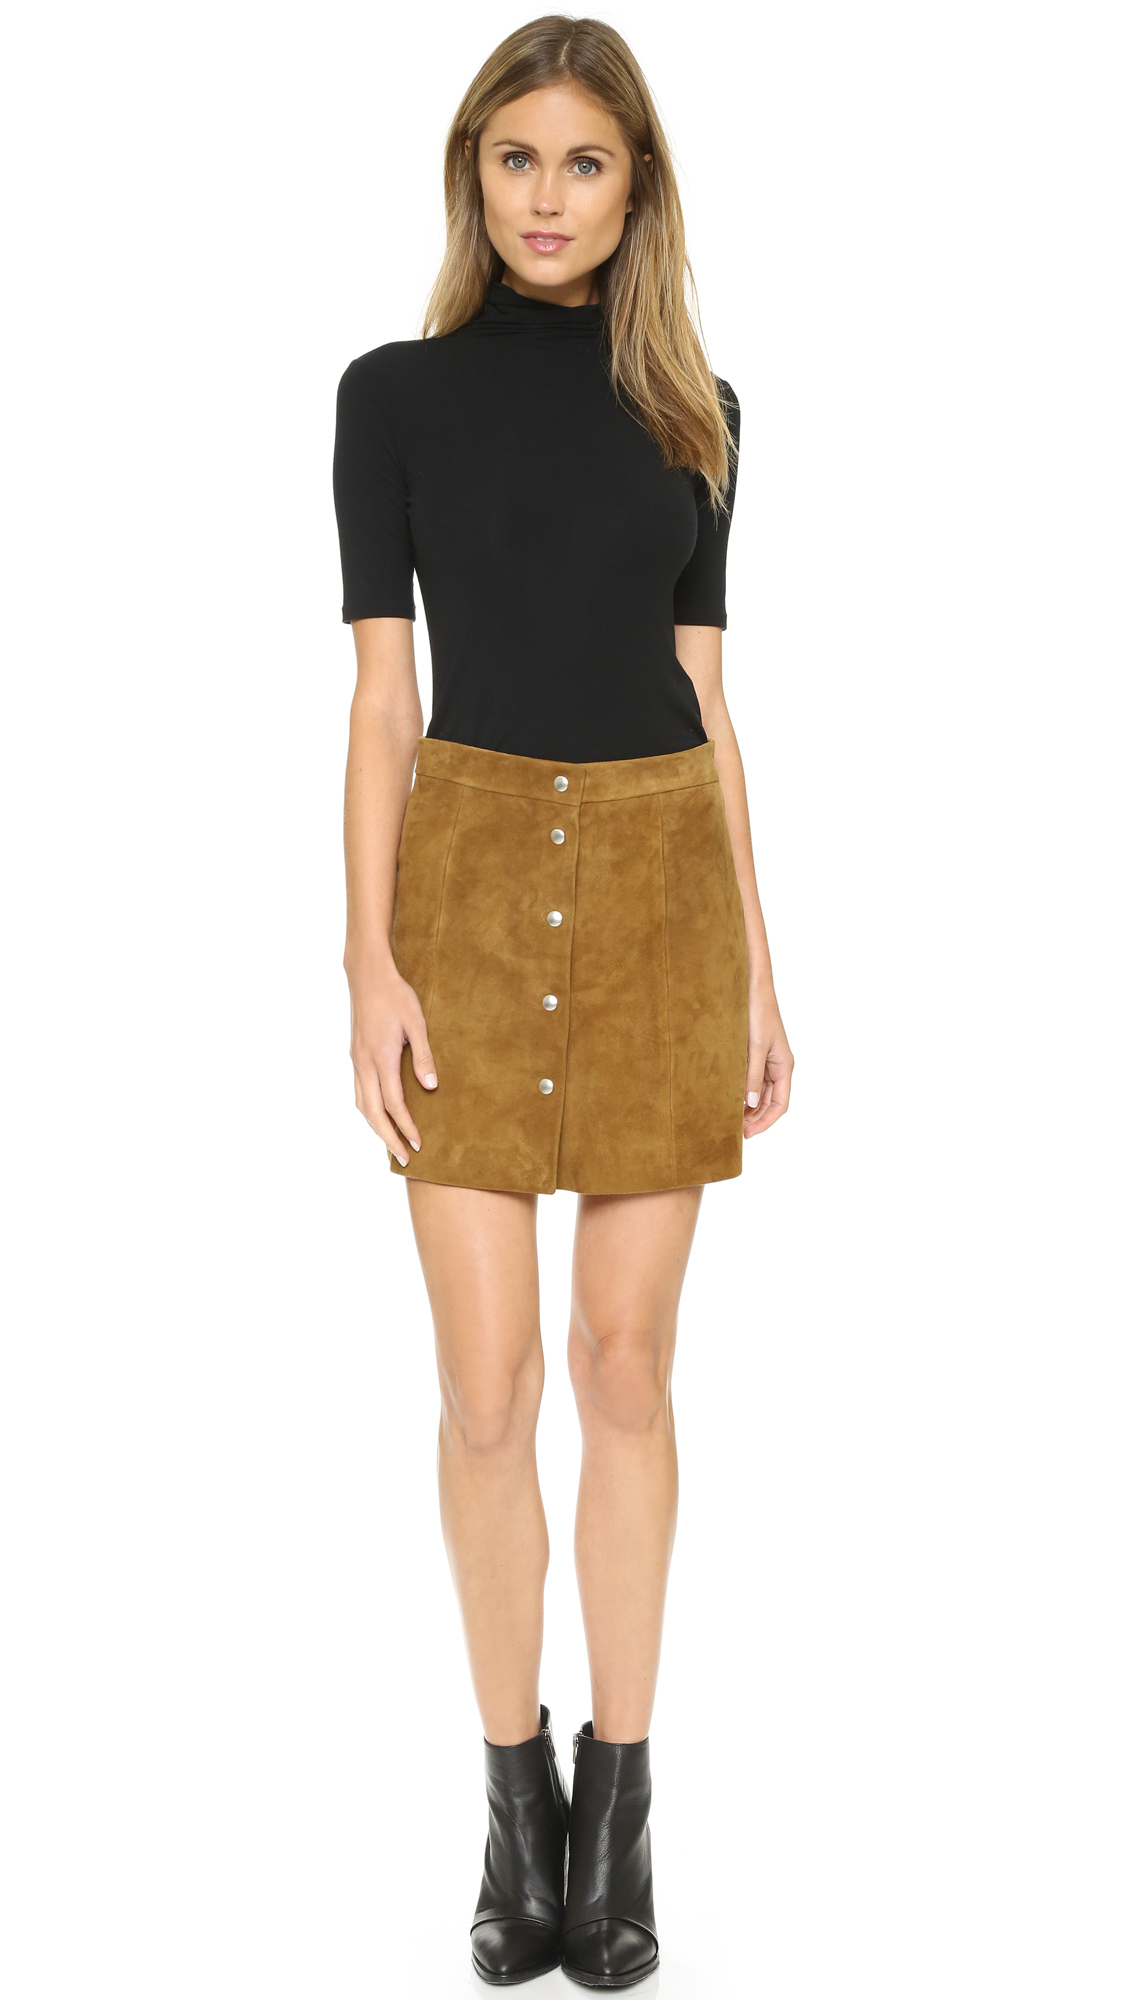 Iro Fellini Suede Skirt - Camel in Natural | Lyst